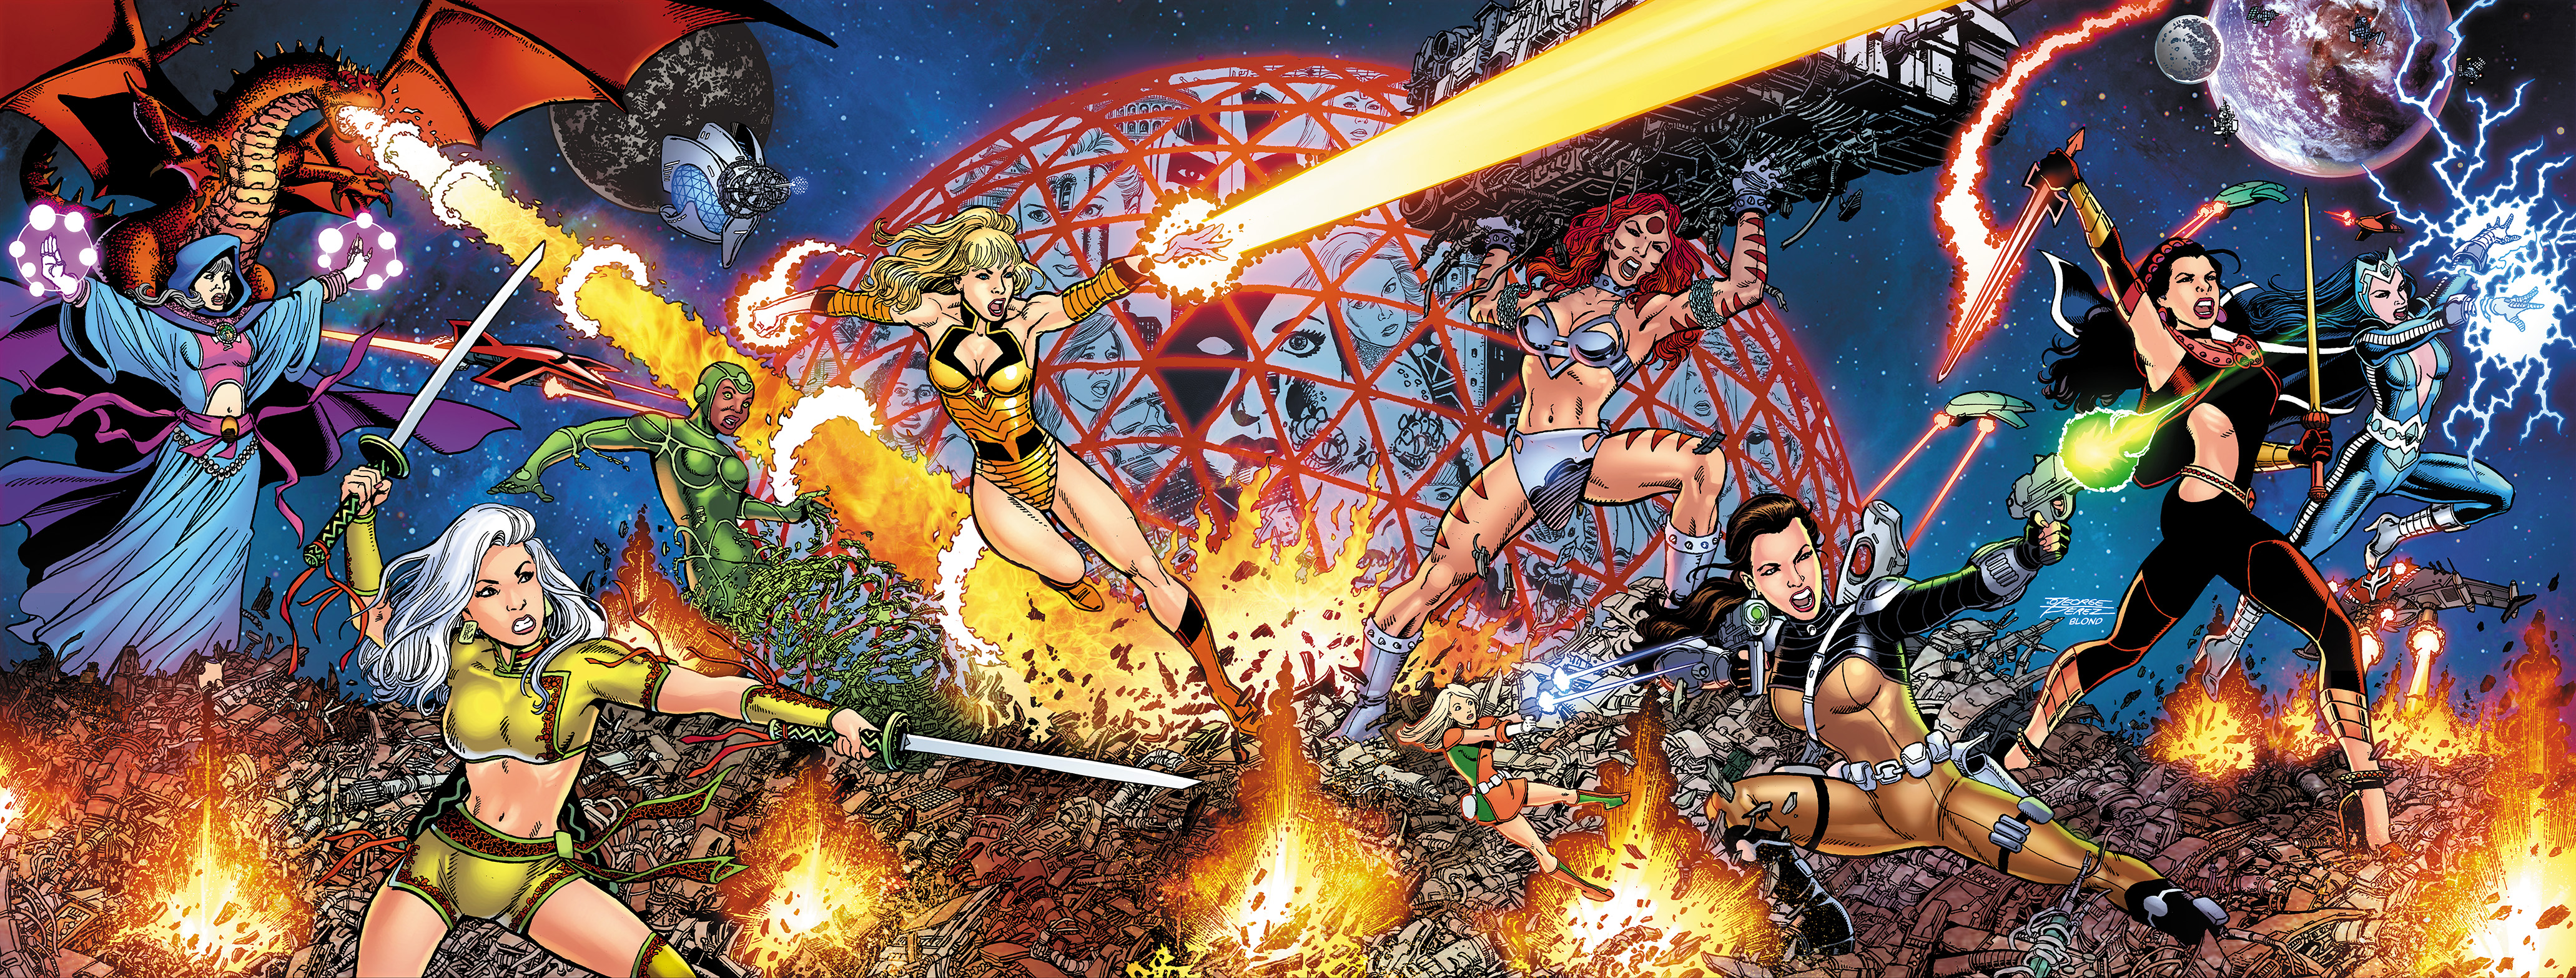 GEORGE PÉREZ'S SIRENS #1 Wraparound Cover by George Pérez